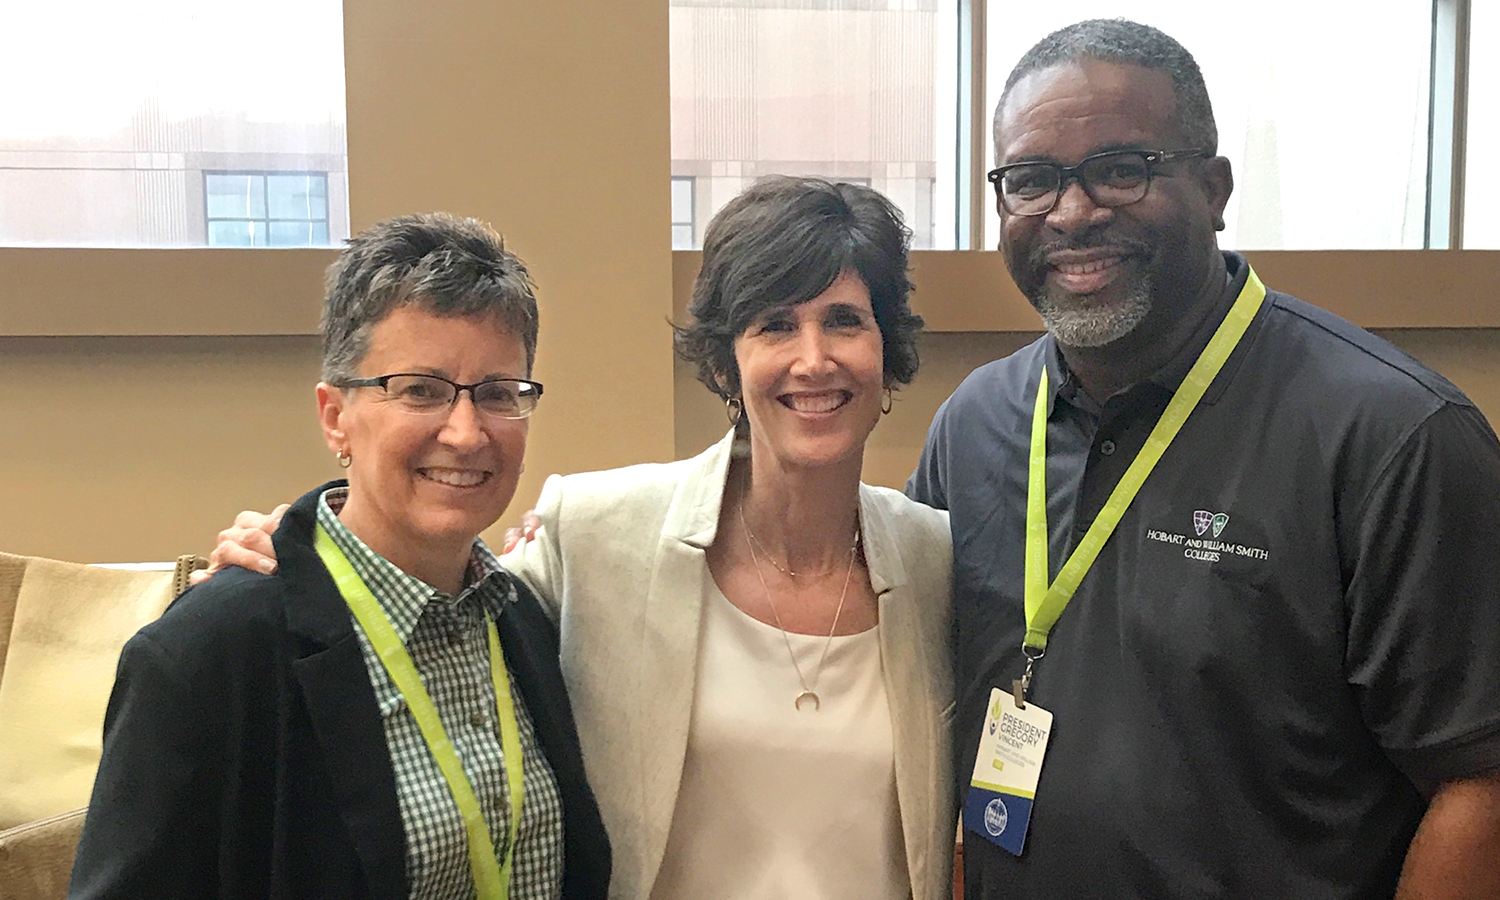 William Smith Athletic Director Deb Steward, Executive Director of the Women Leaders in College Sports Patti Phillips and President Gregory J. Vincent '83 pose for a photo at the Women Leaders National Convention in Dallas, Texas.